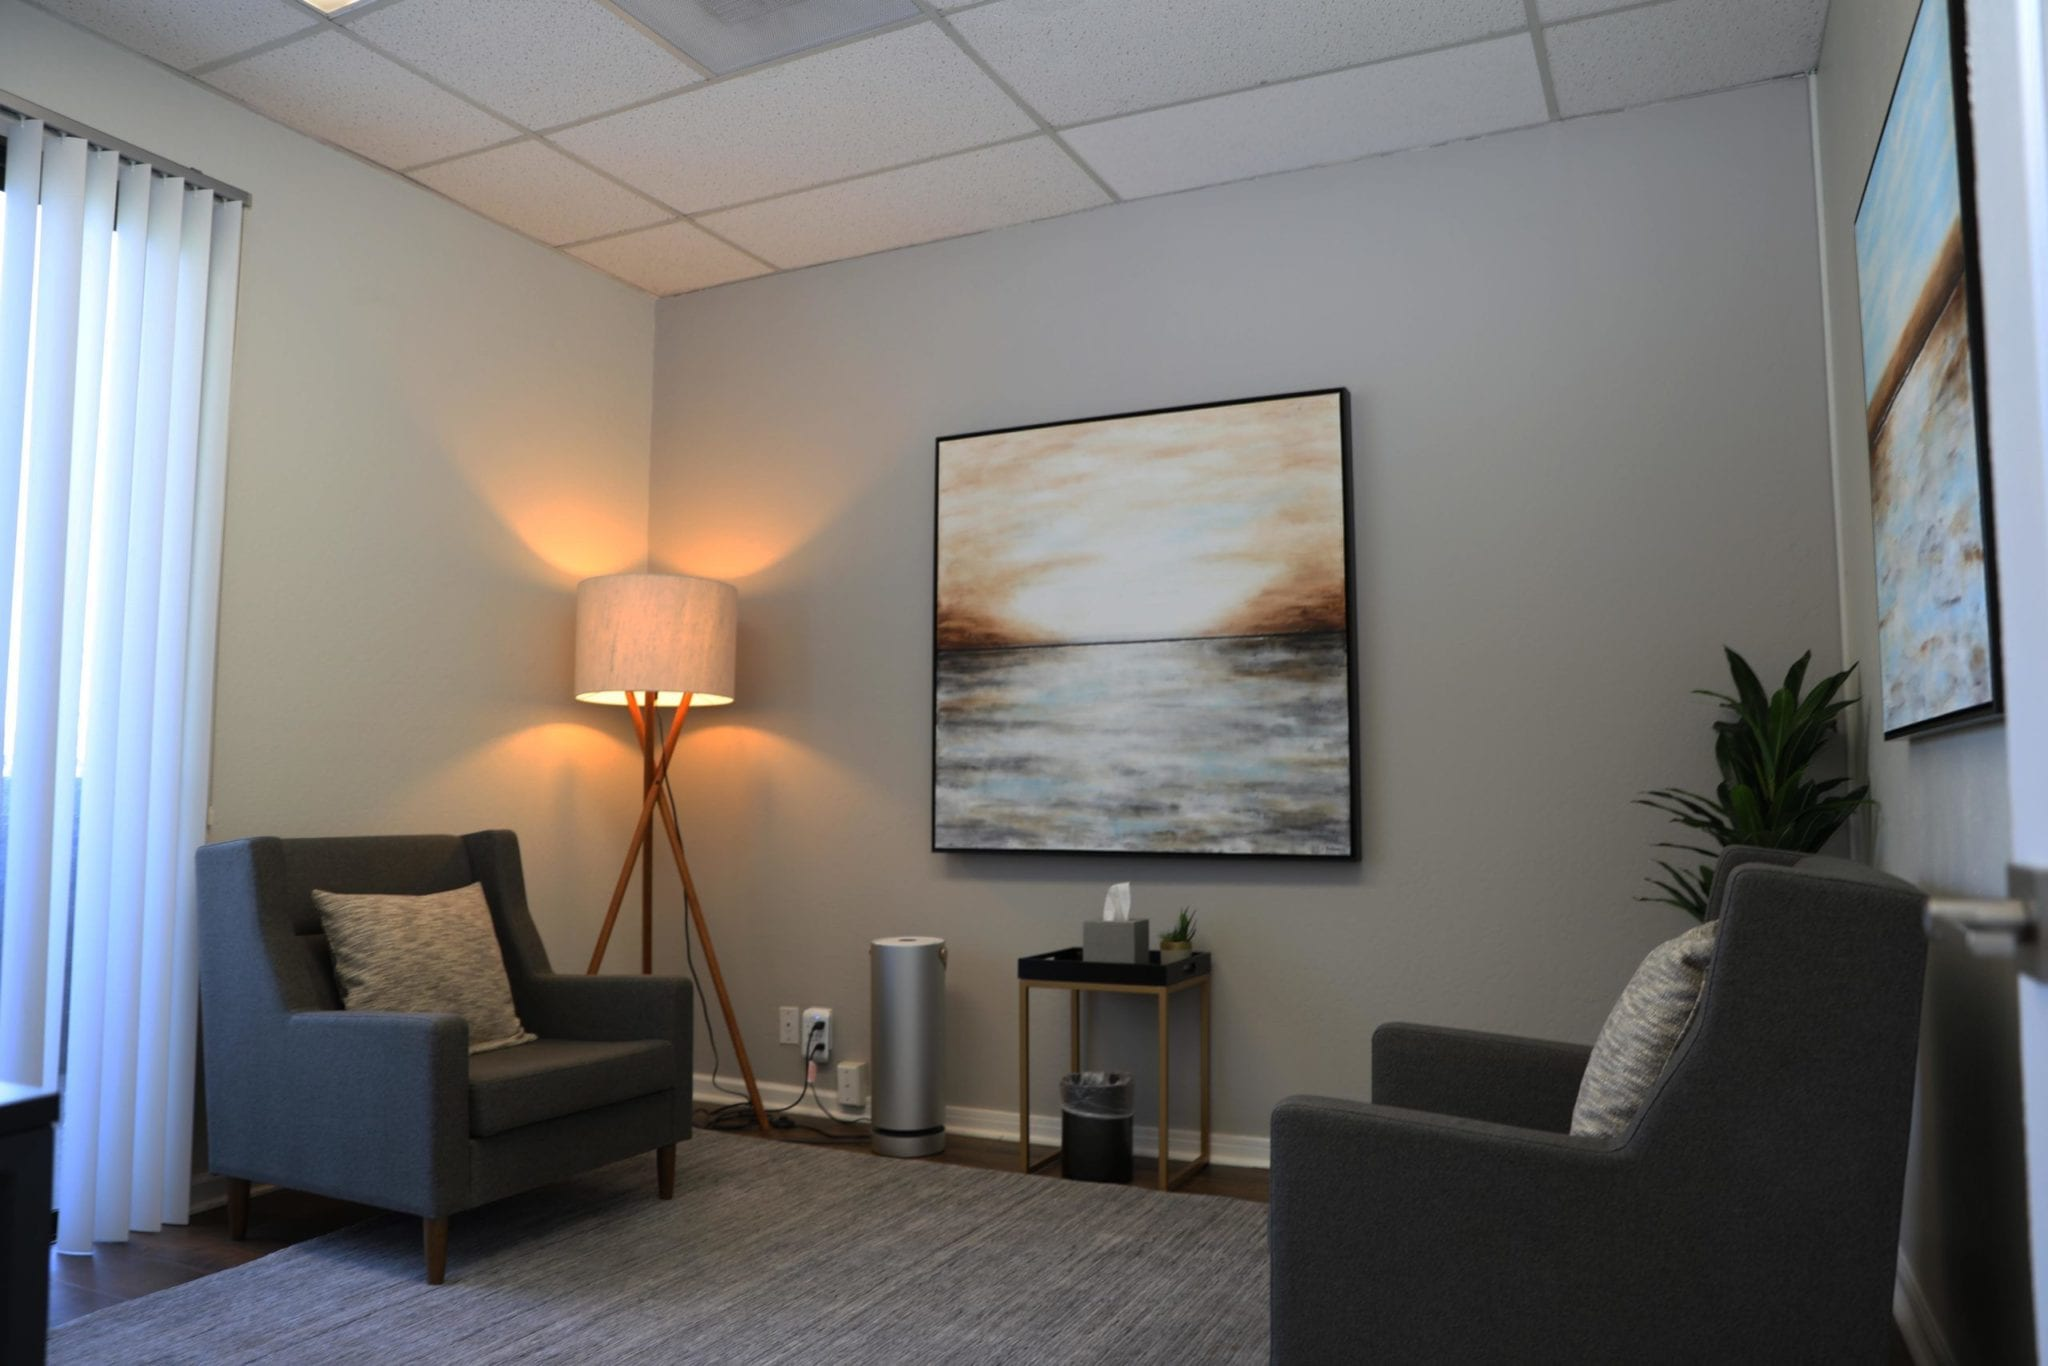 The first therapy office in the office of Ginny Estupinian Ph.D.